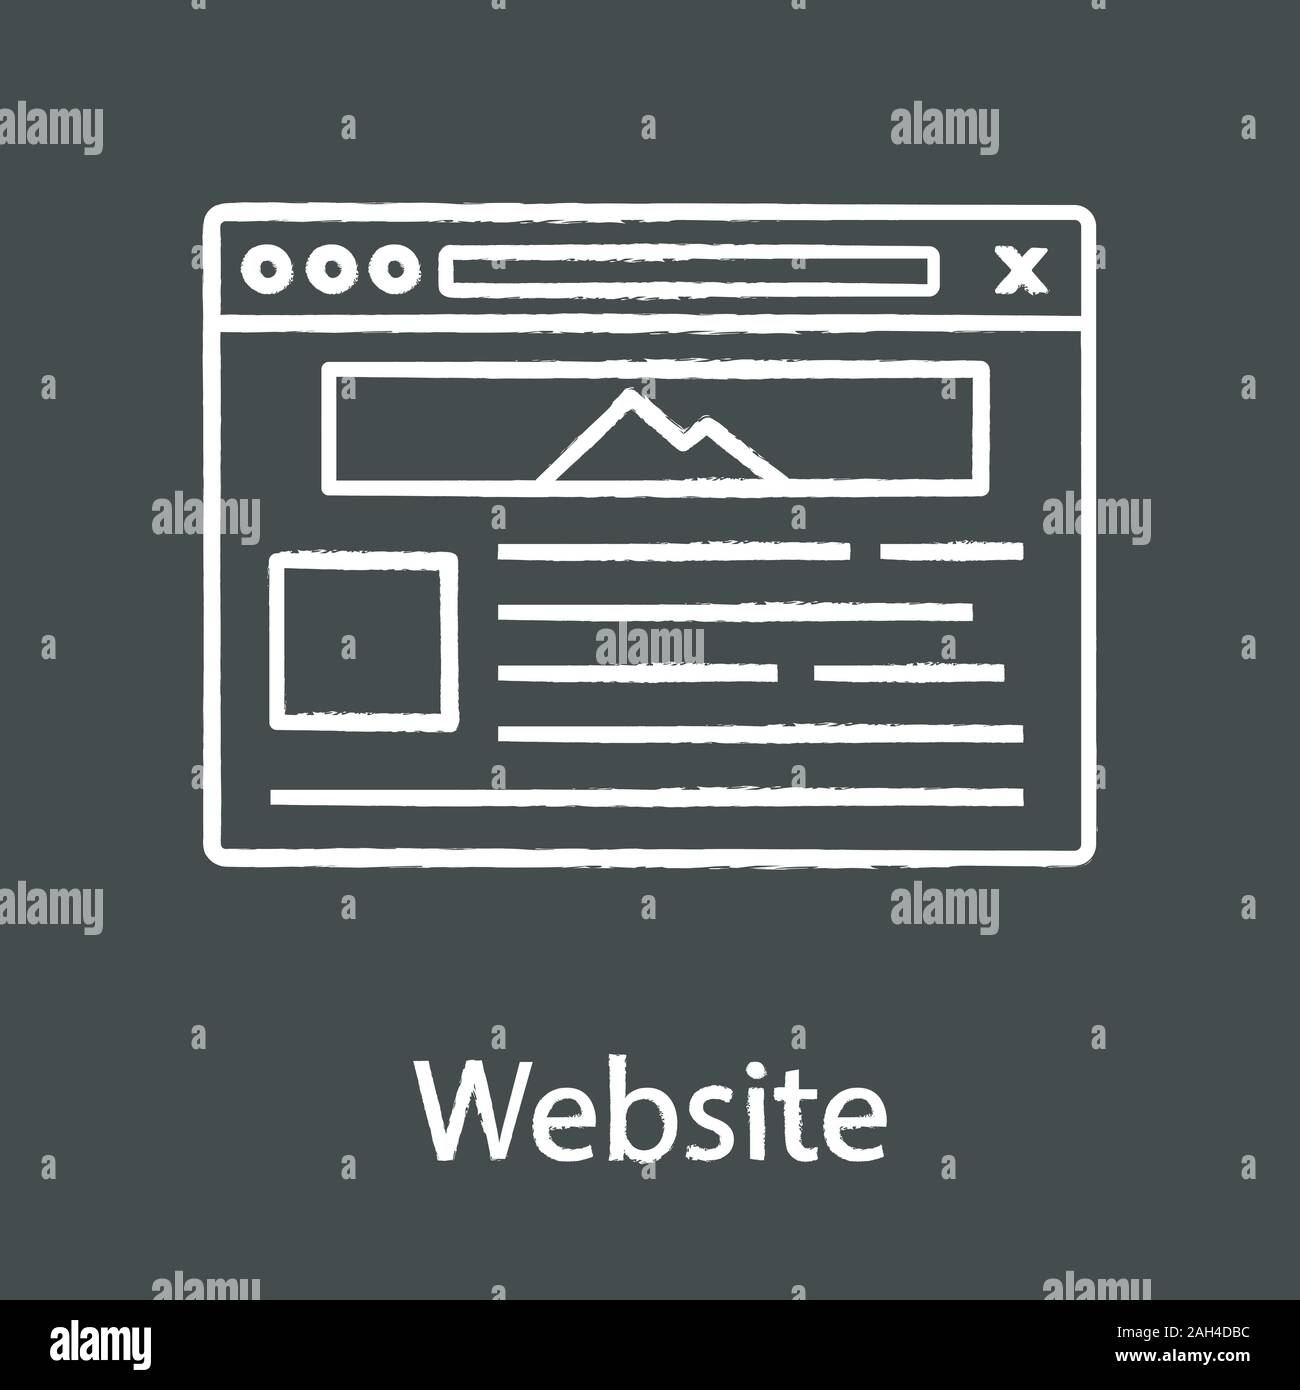 Website Chalk Icon Web Page Web Browser Interface Internet Marketing Social Media Internet Shop Webpage Template Website Design Service Isolate Stock Vector Image Art Alamy